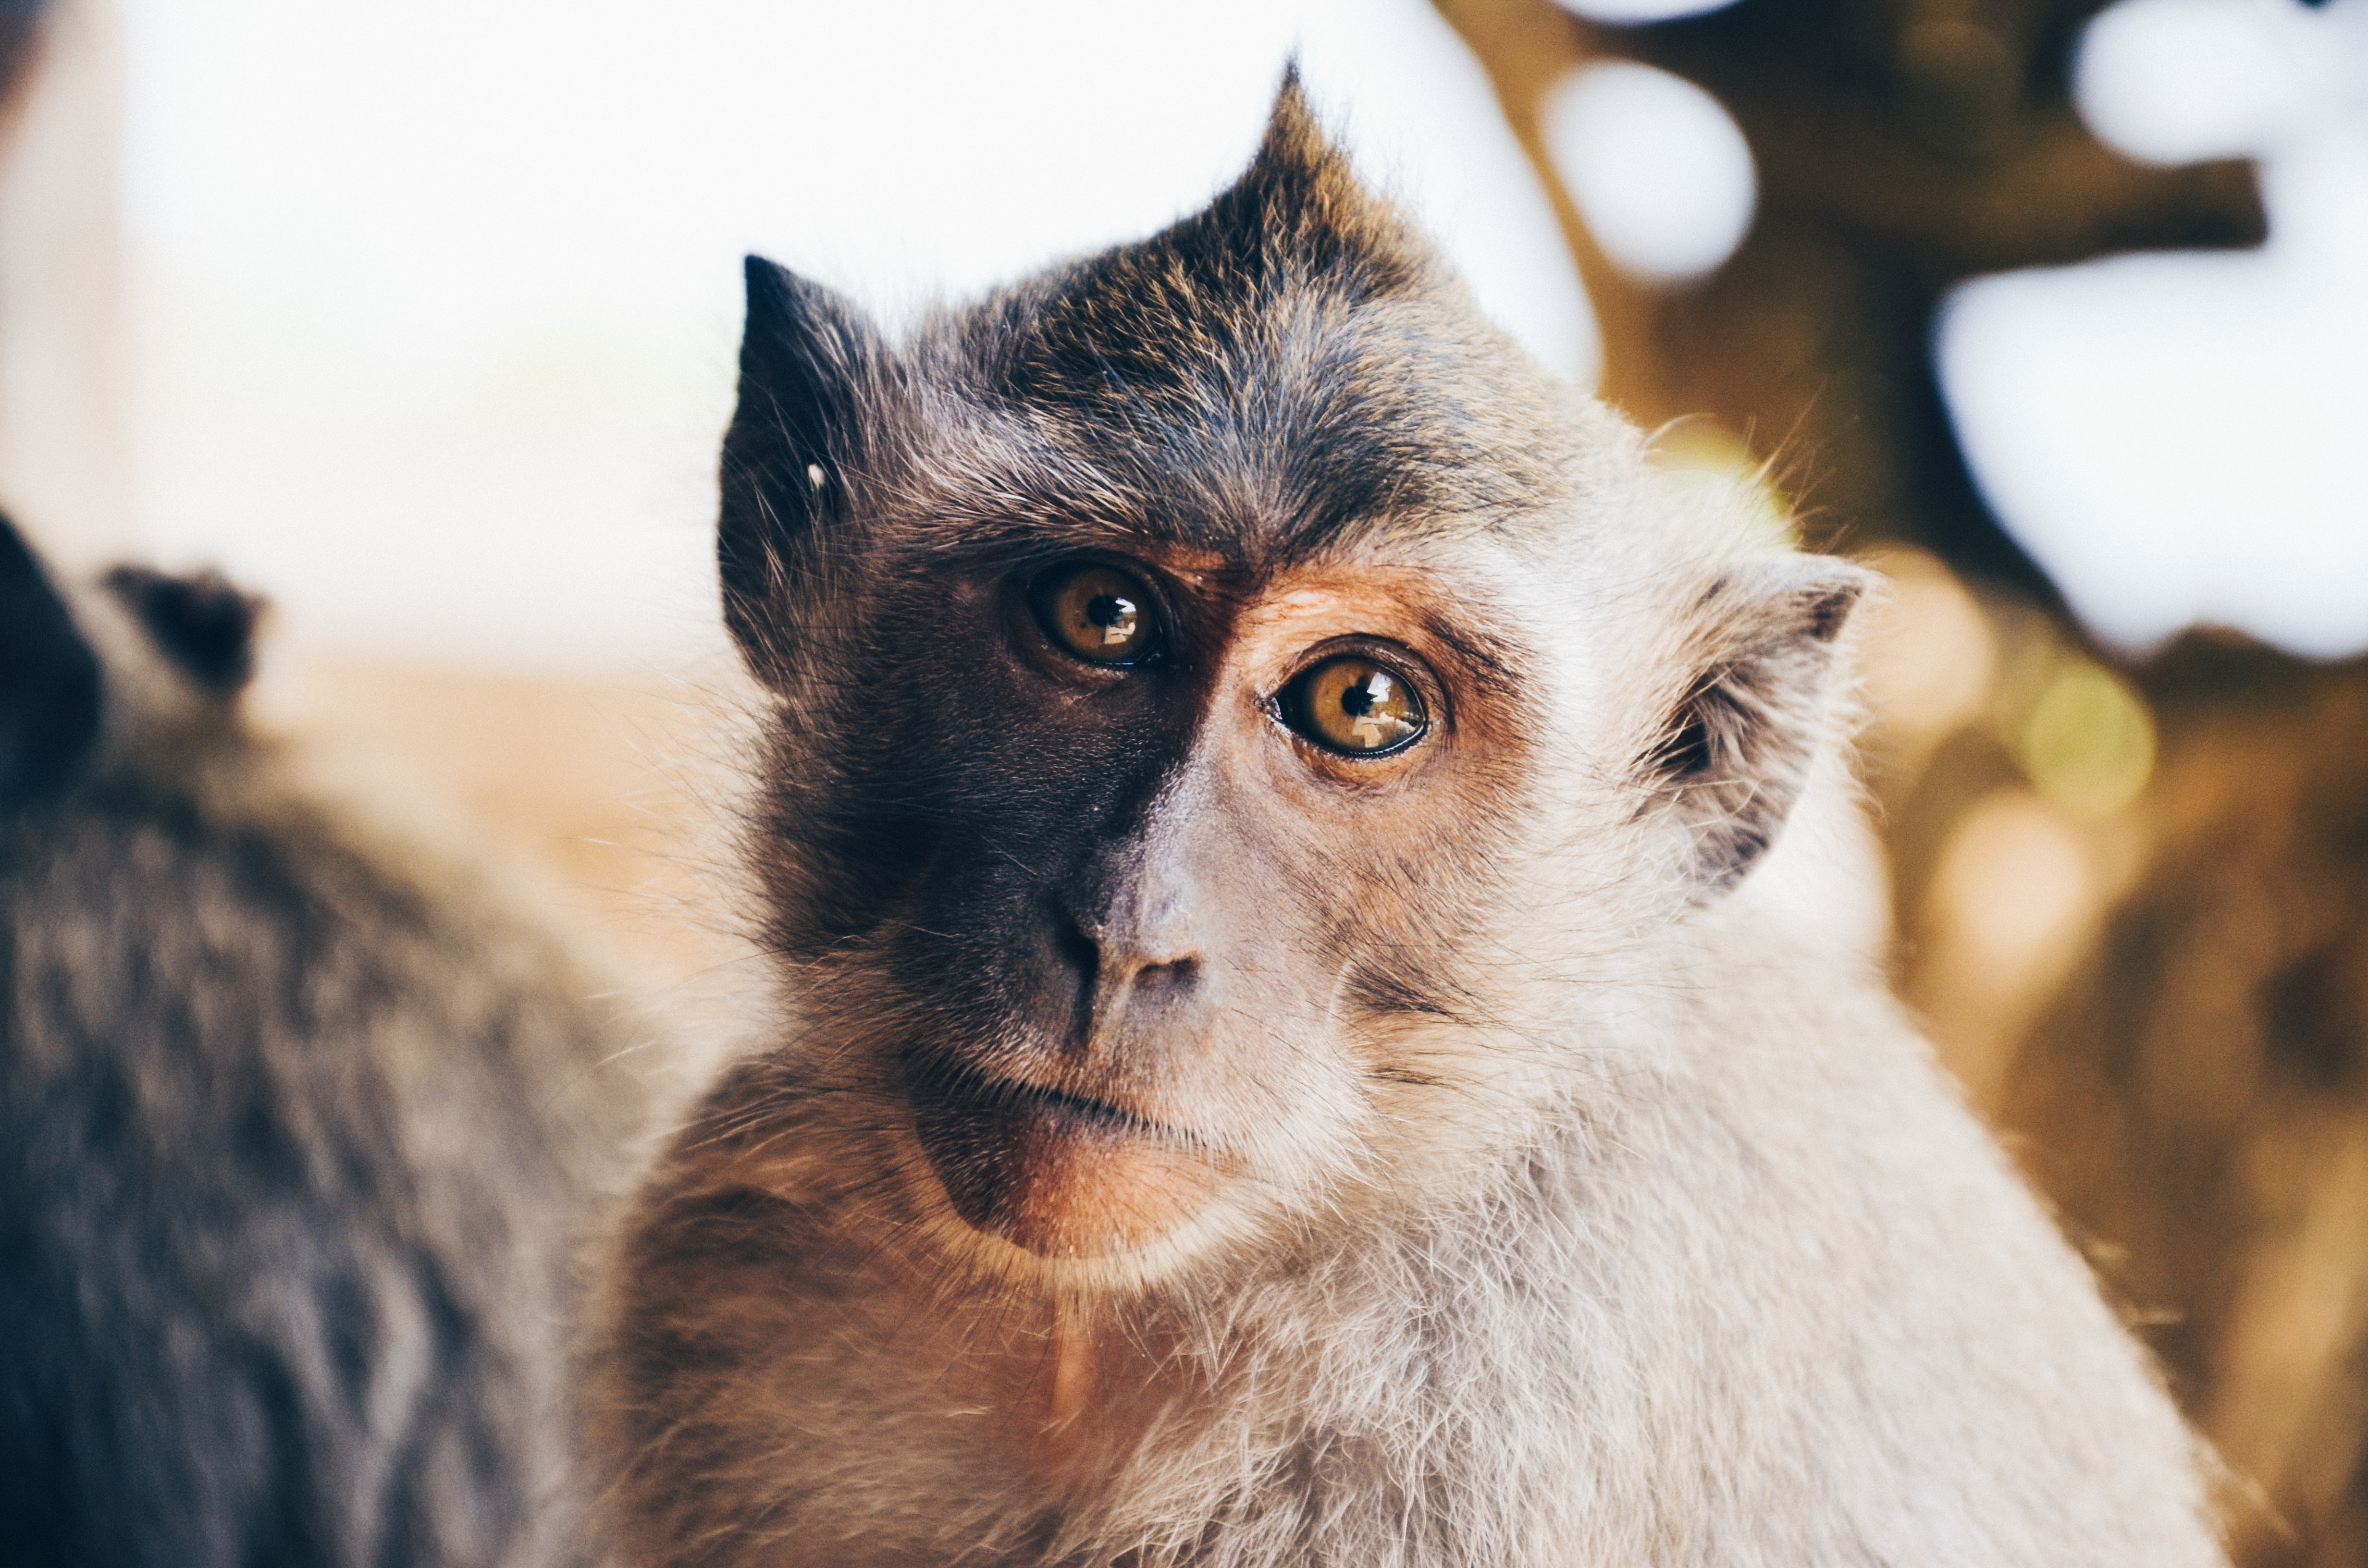 Portrait of a monkey staring into the camera